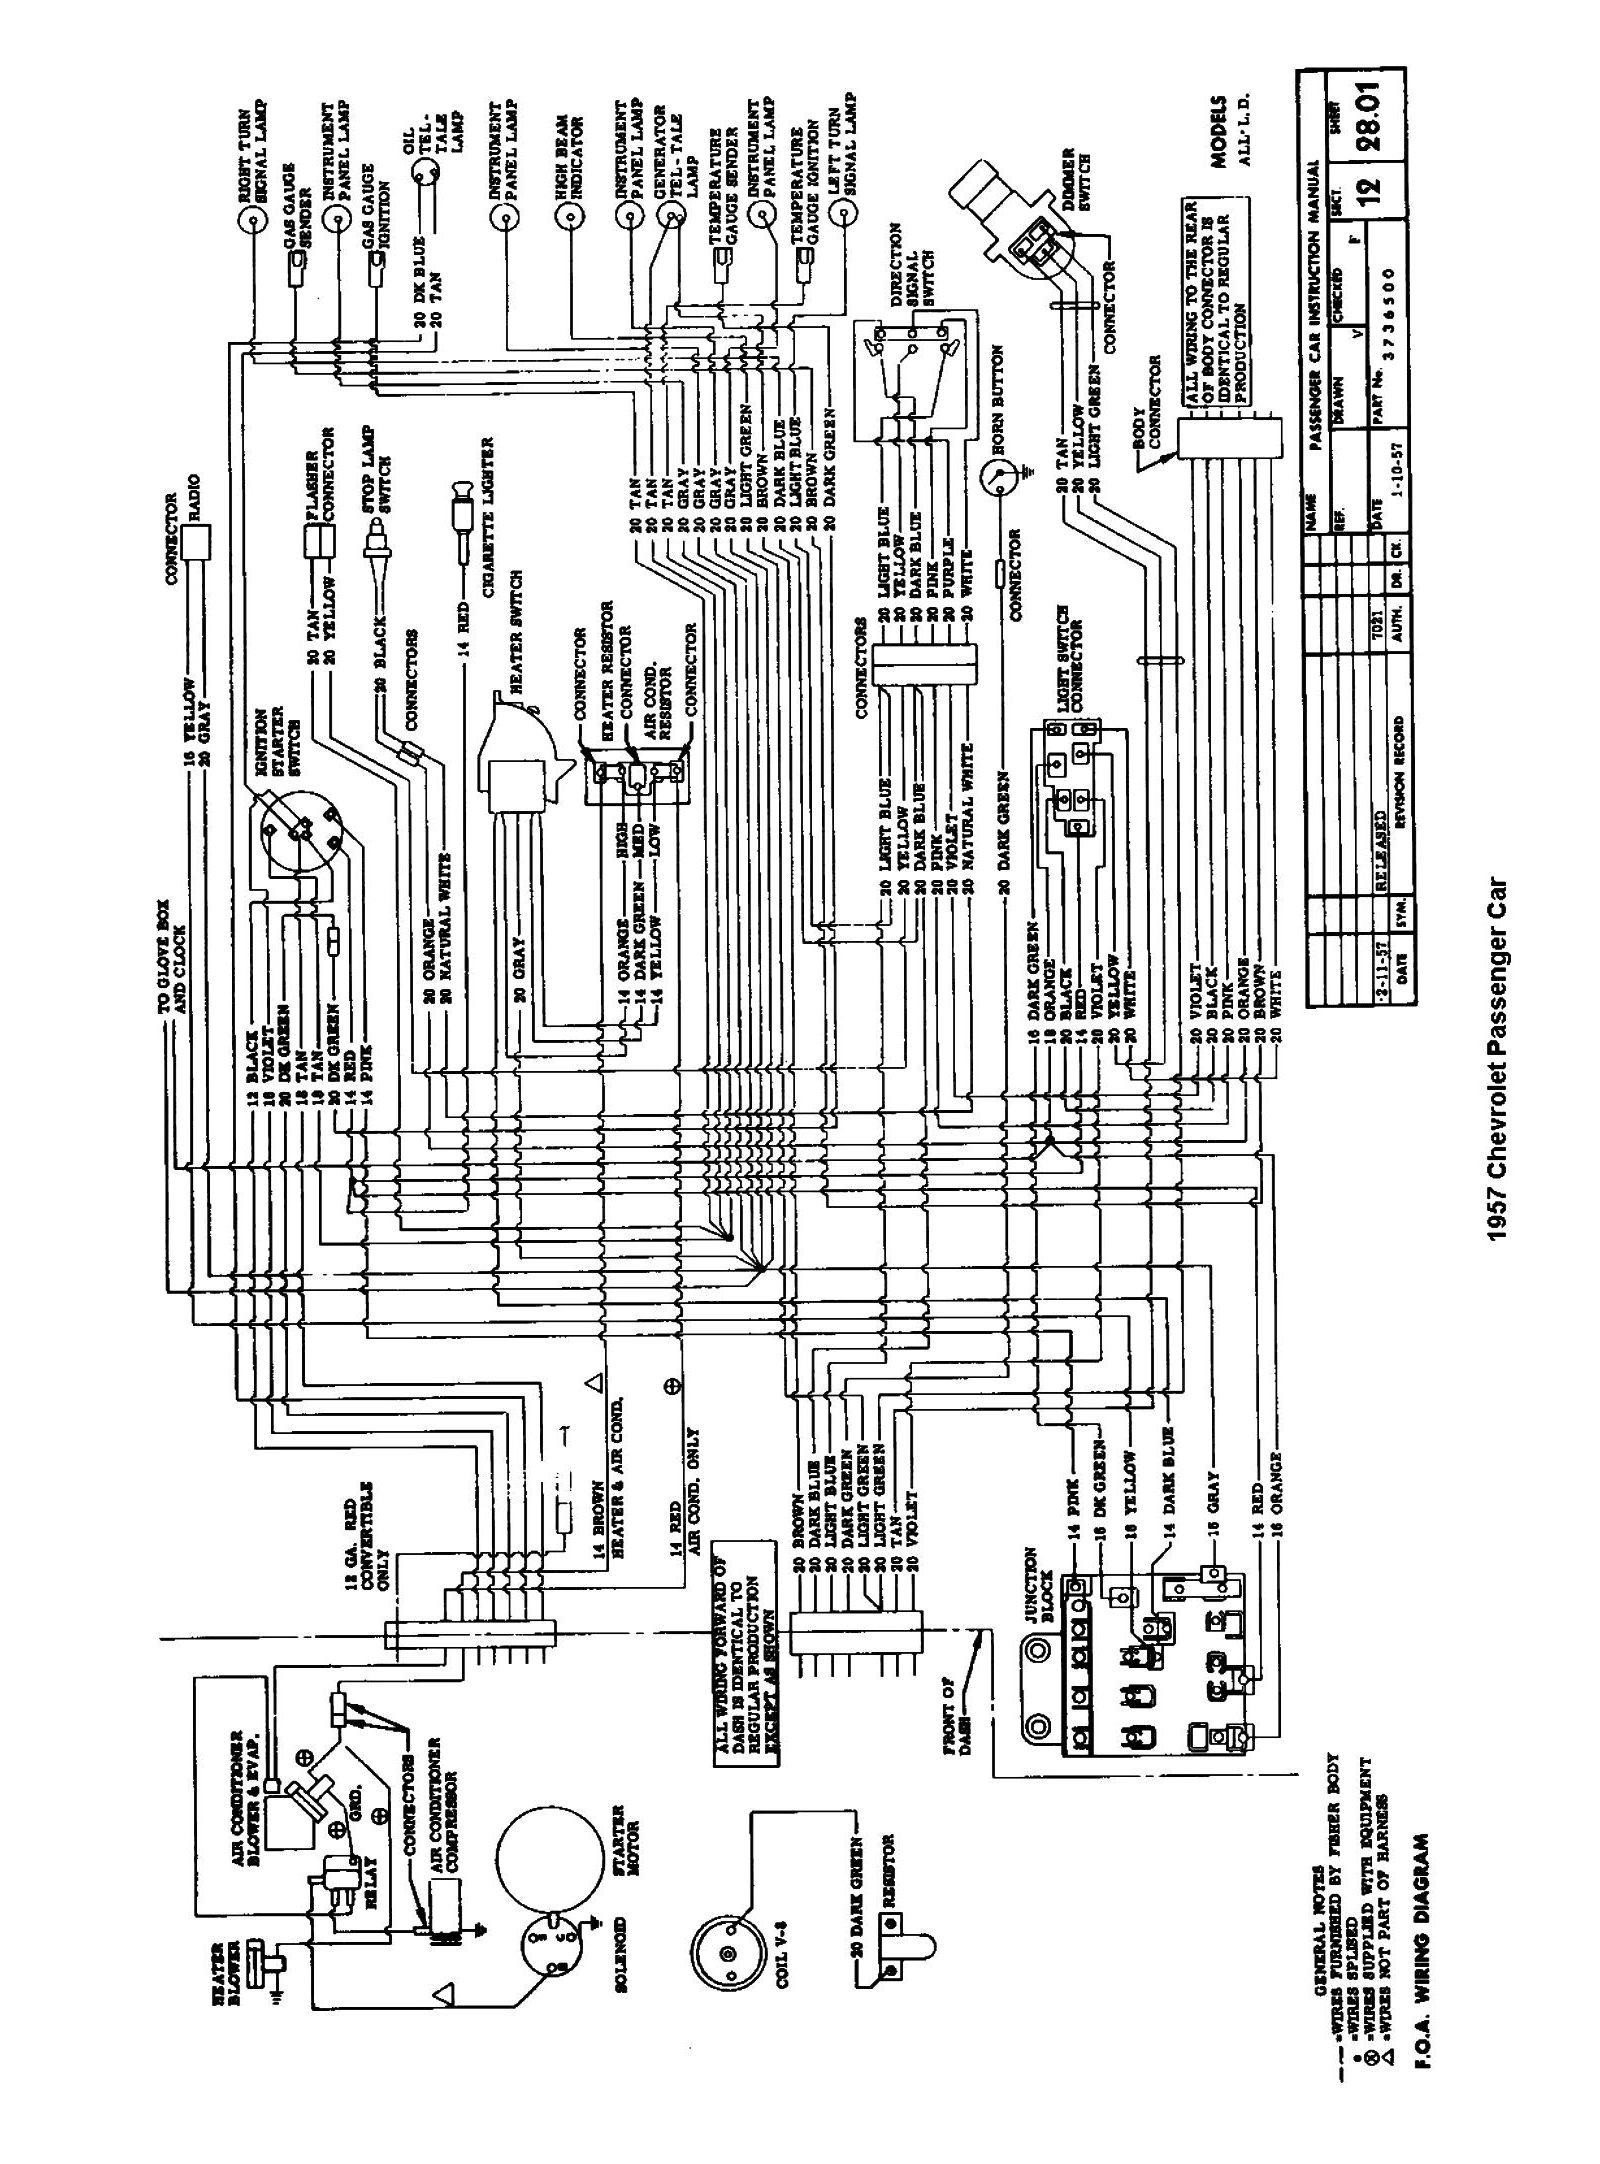 Free Chevy Wiring Diagrams | Wiring Diagram on